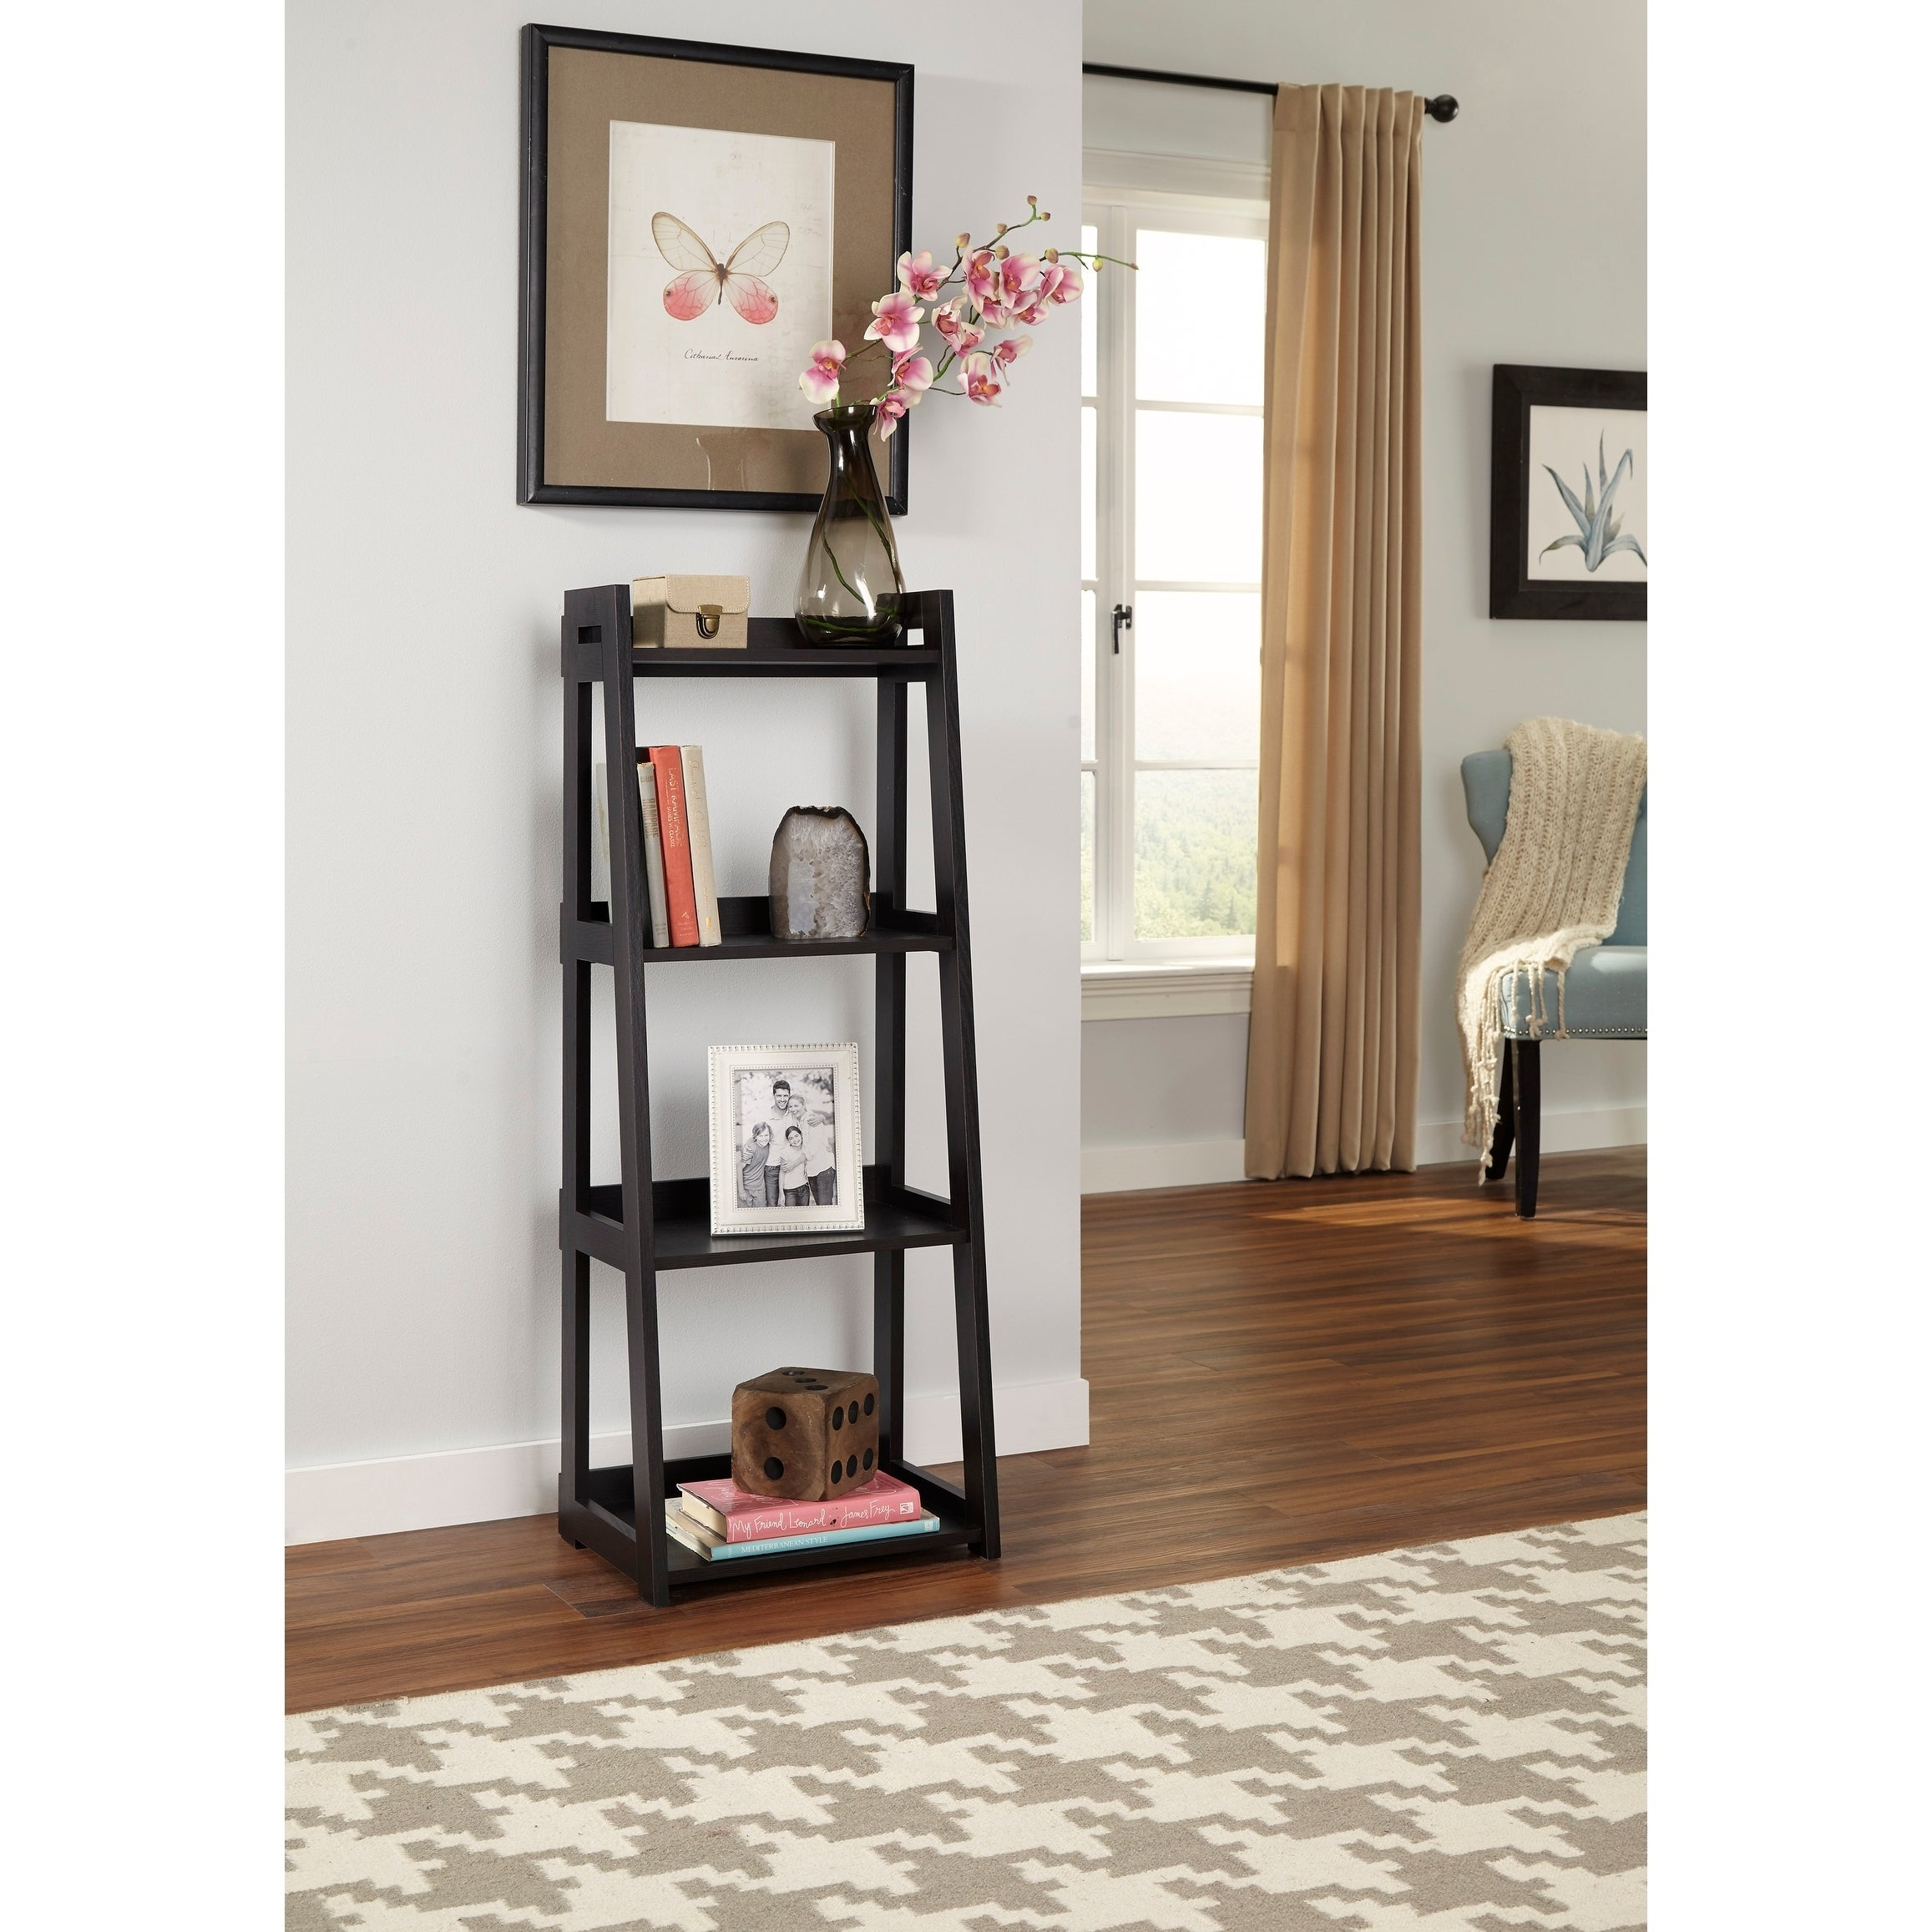 Superbe Shop ClosetMaid No Tool Assembly Narrow 4 Tier Ladder Shelf   Free Shipping  Today   Overstock.com   18127636